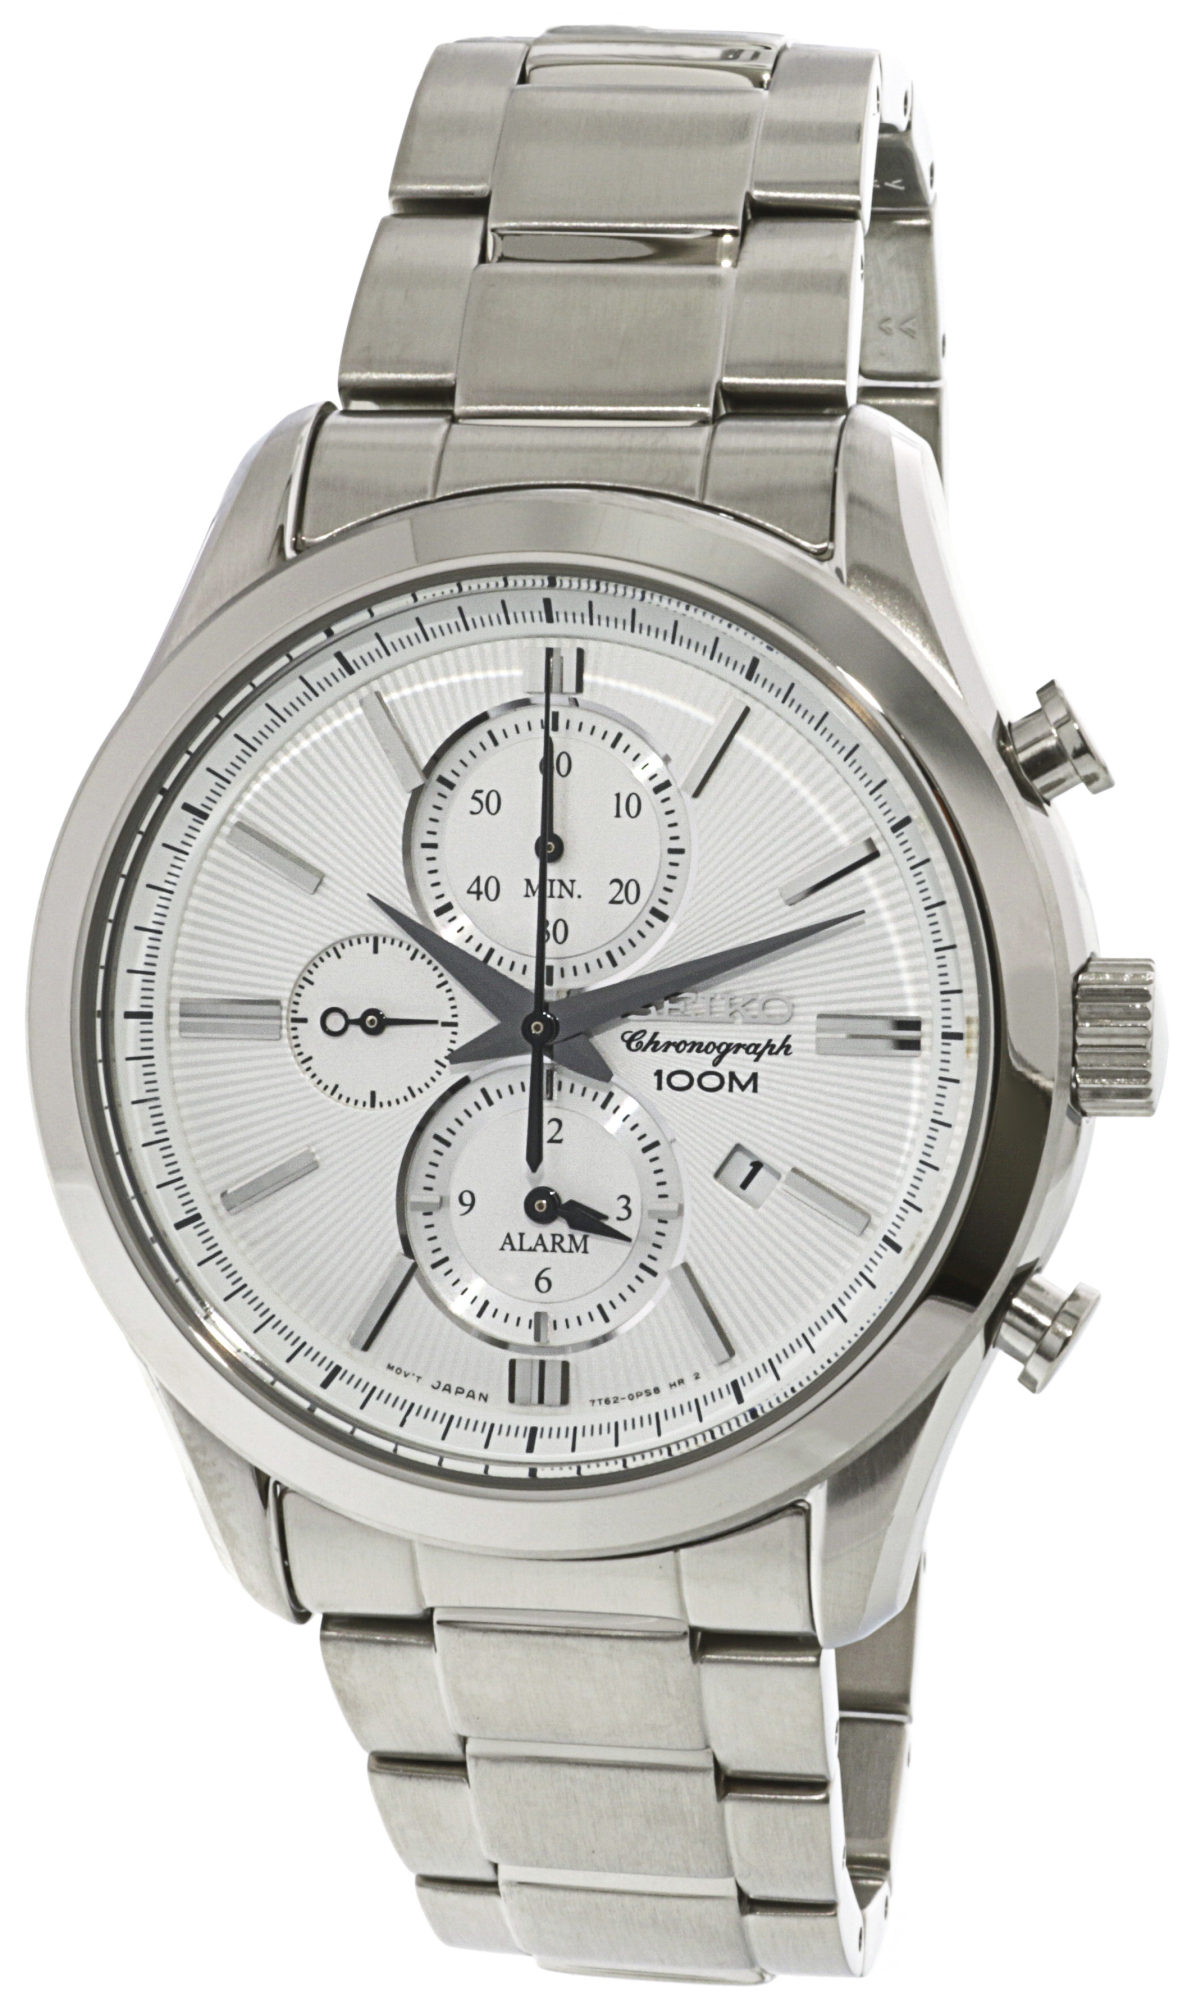 Seiko_Men's_SNAF63_Silver_Stainless-Steel_Japanese_Chronograph_Fashion_Watch